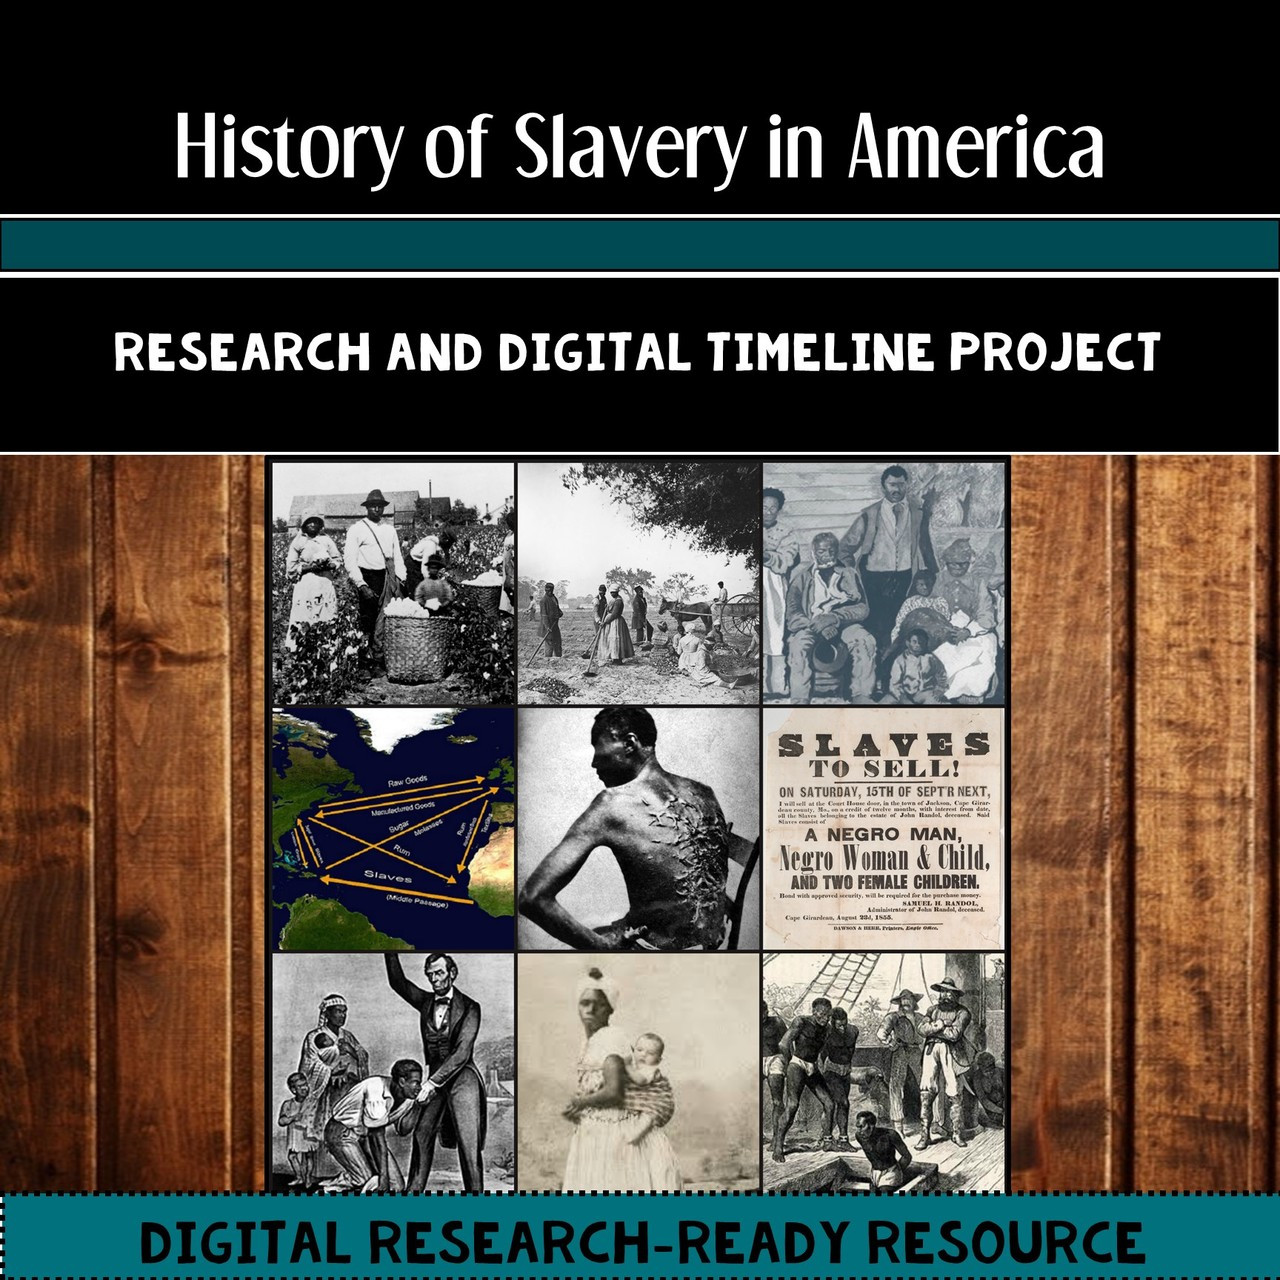 the slave trade and the origins Video: the slave trade compromise: definition & commerce slavery has had dramatic impacts on american history in this lesson, we'll look at one of the first attempts to resolve the debate on .